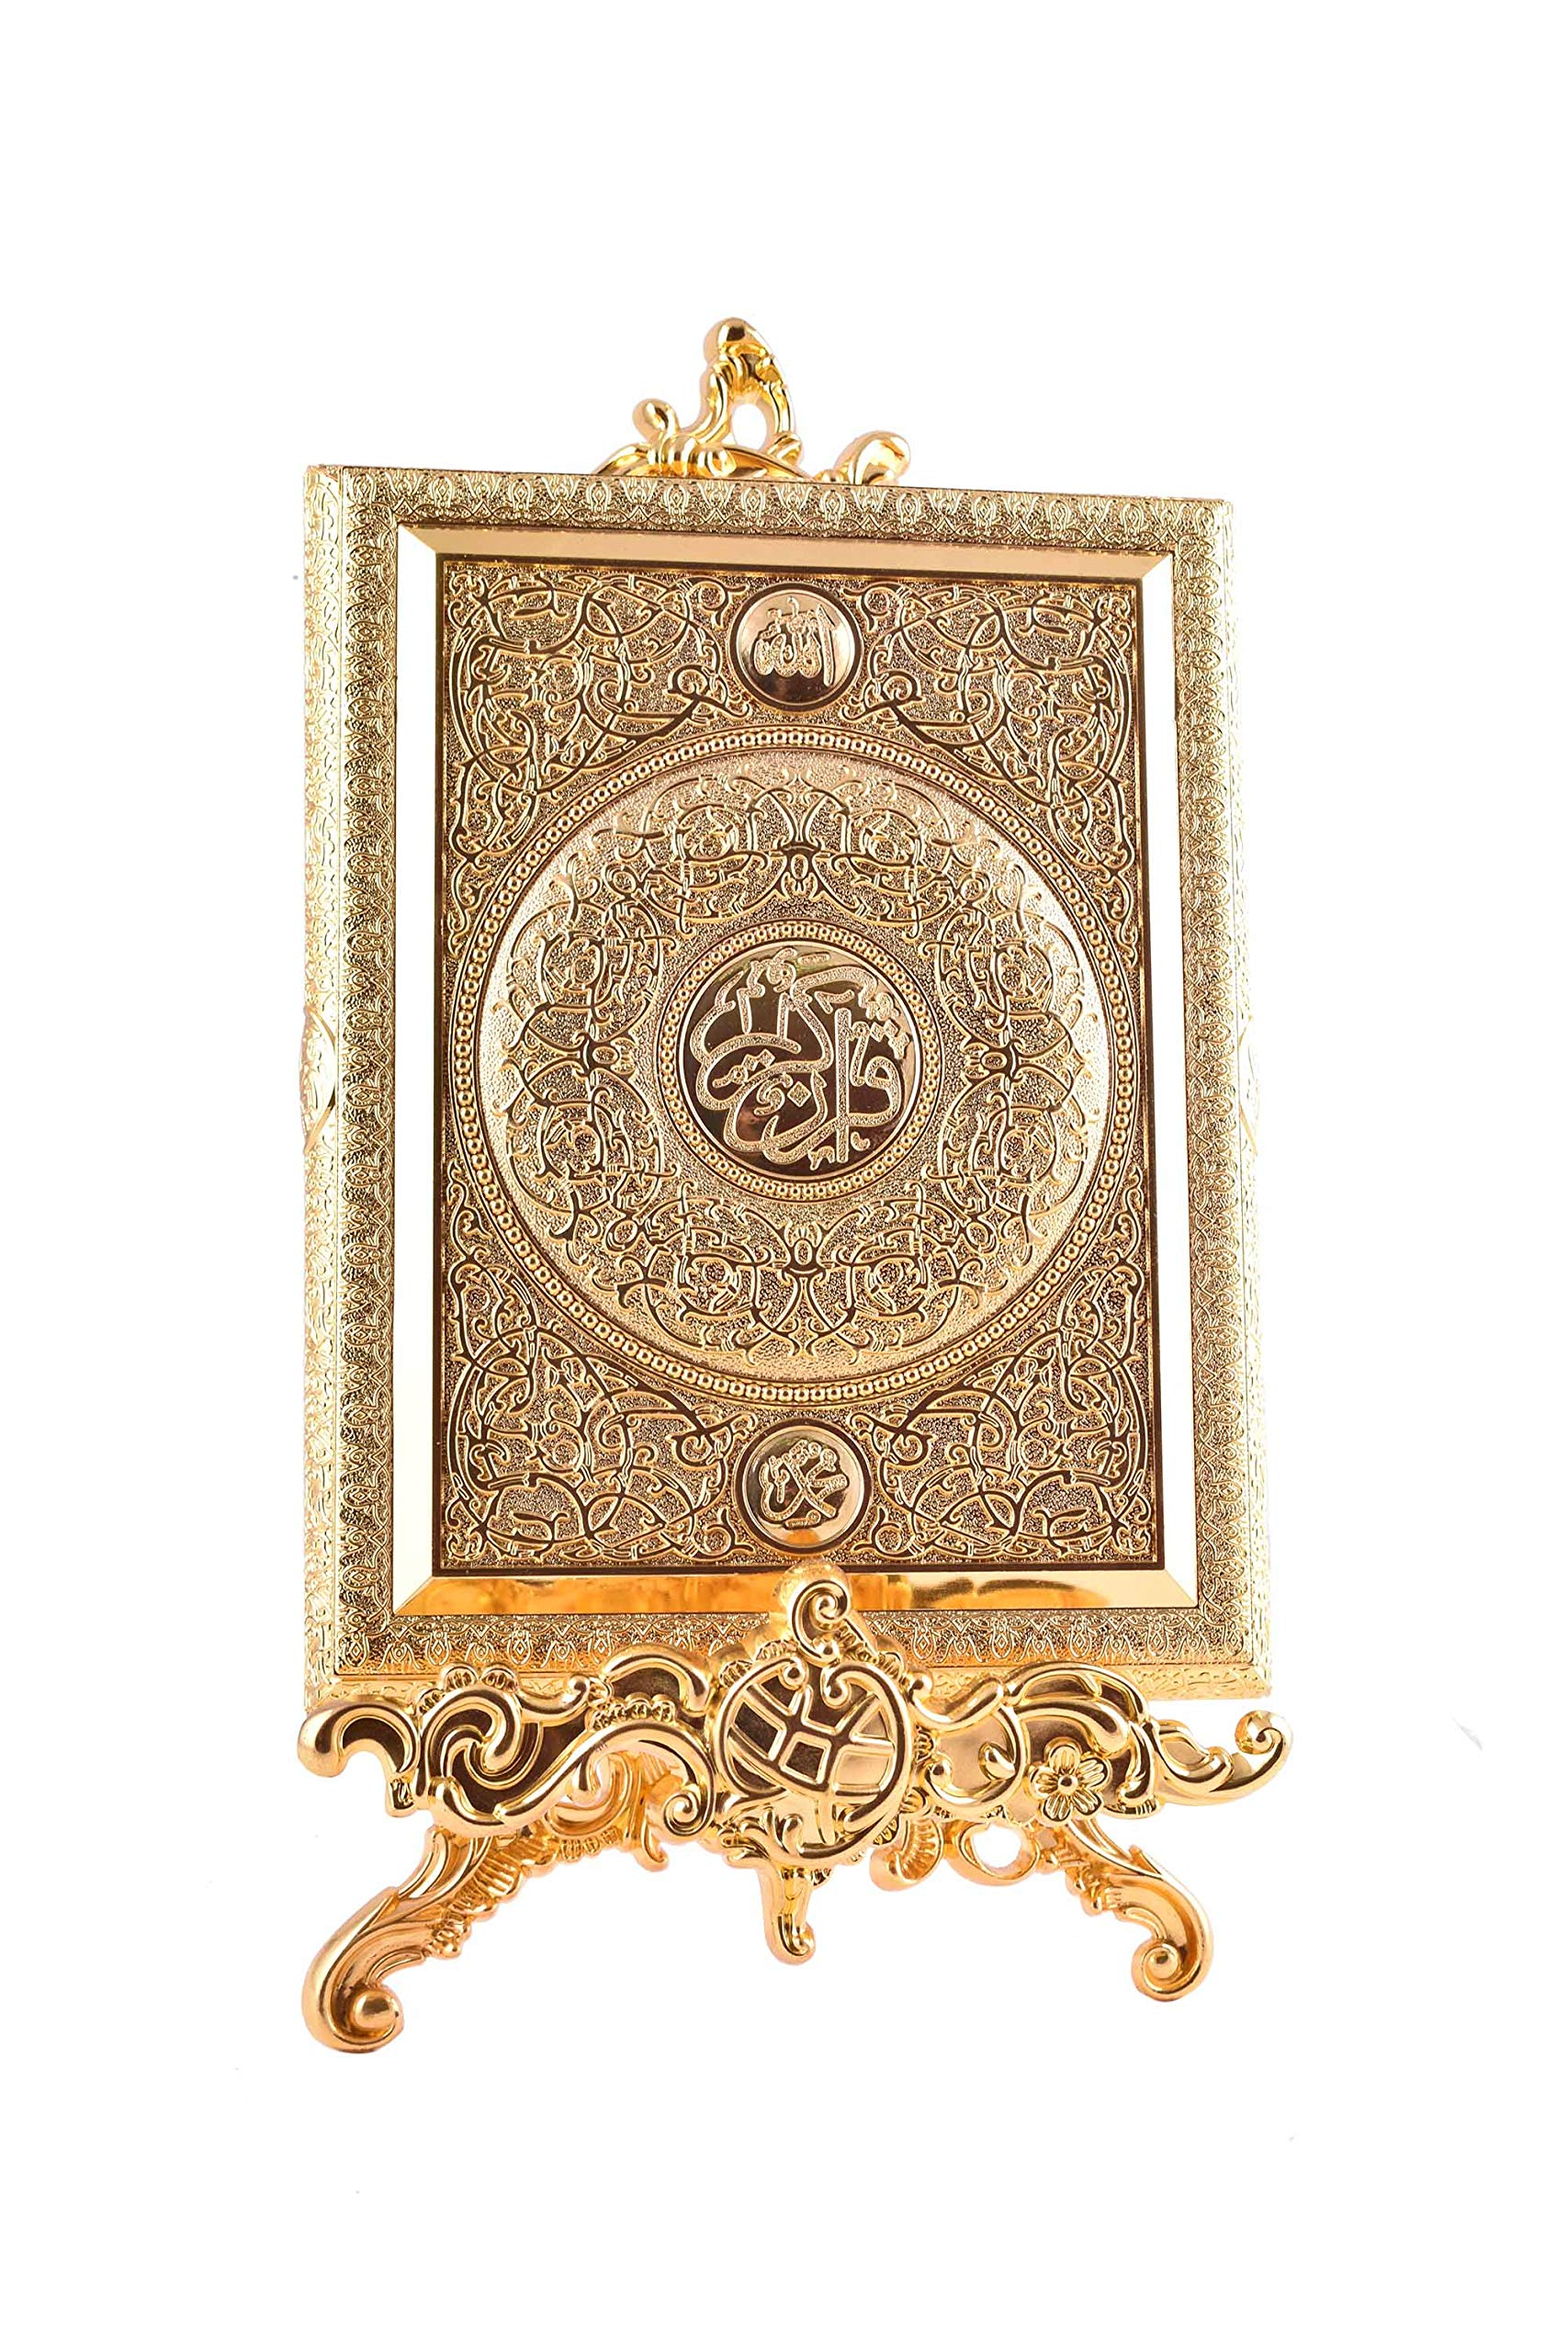 ELTAHAN Holy Quran Decorative Storage Box with Crystal Stones + Matching Stand (Gold)